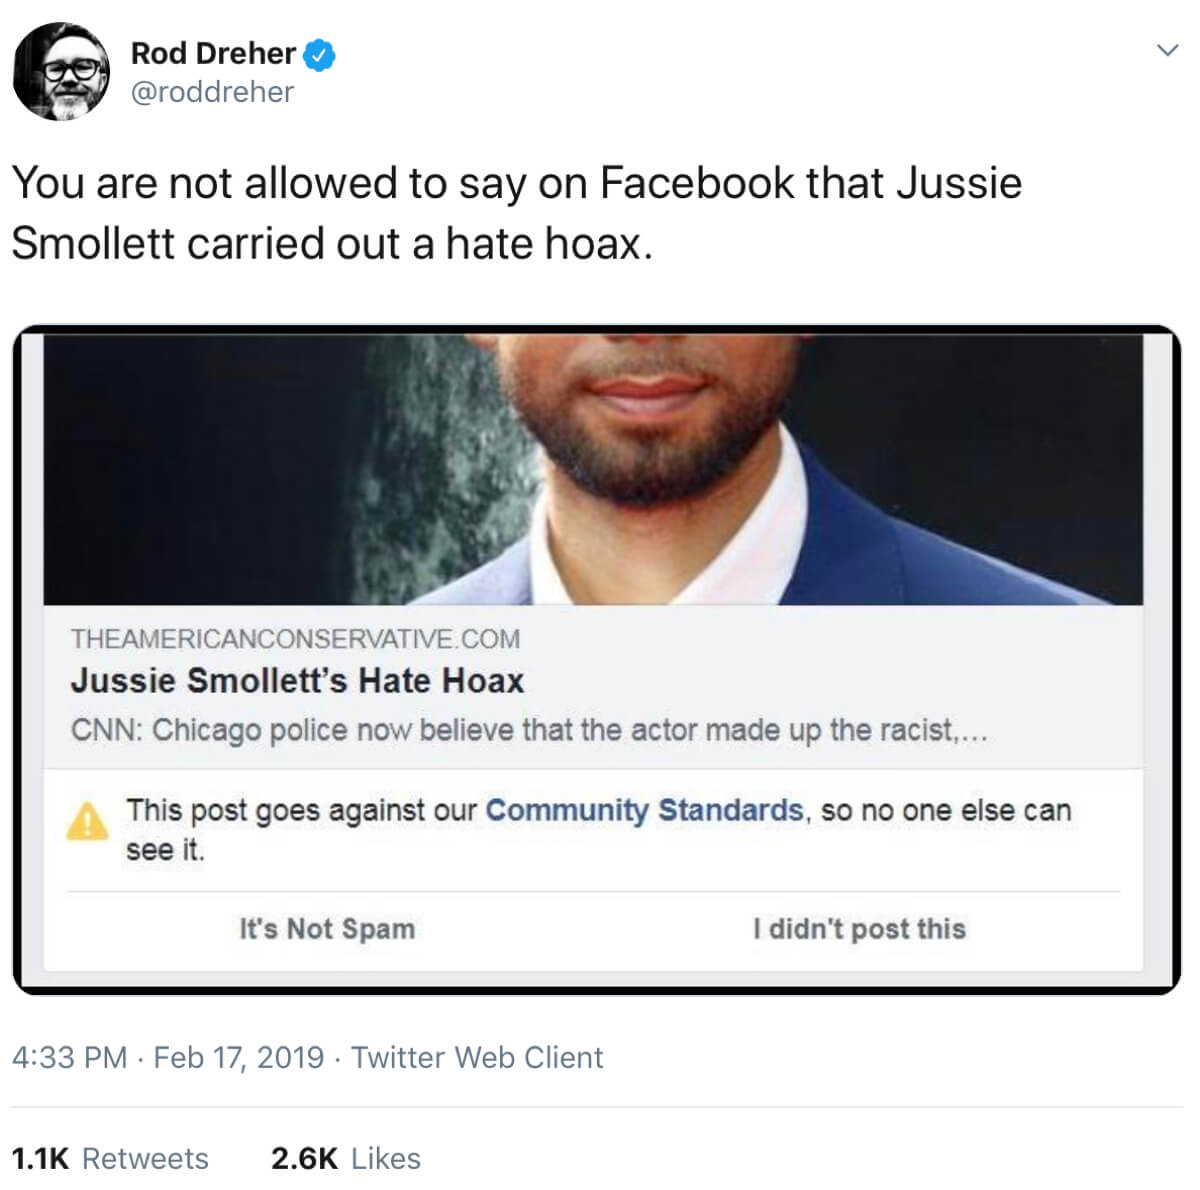 Rod Dreher's tweet about links to his Jussie Smollet article being blacklisted.